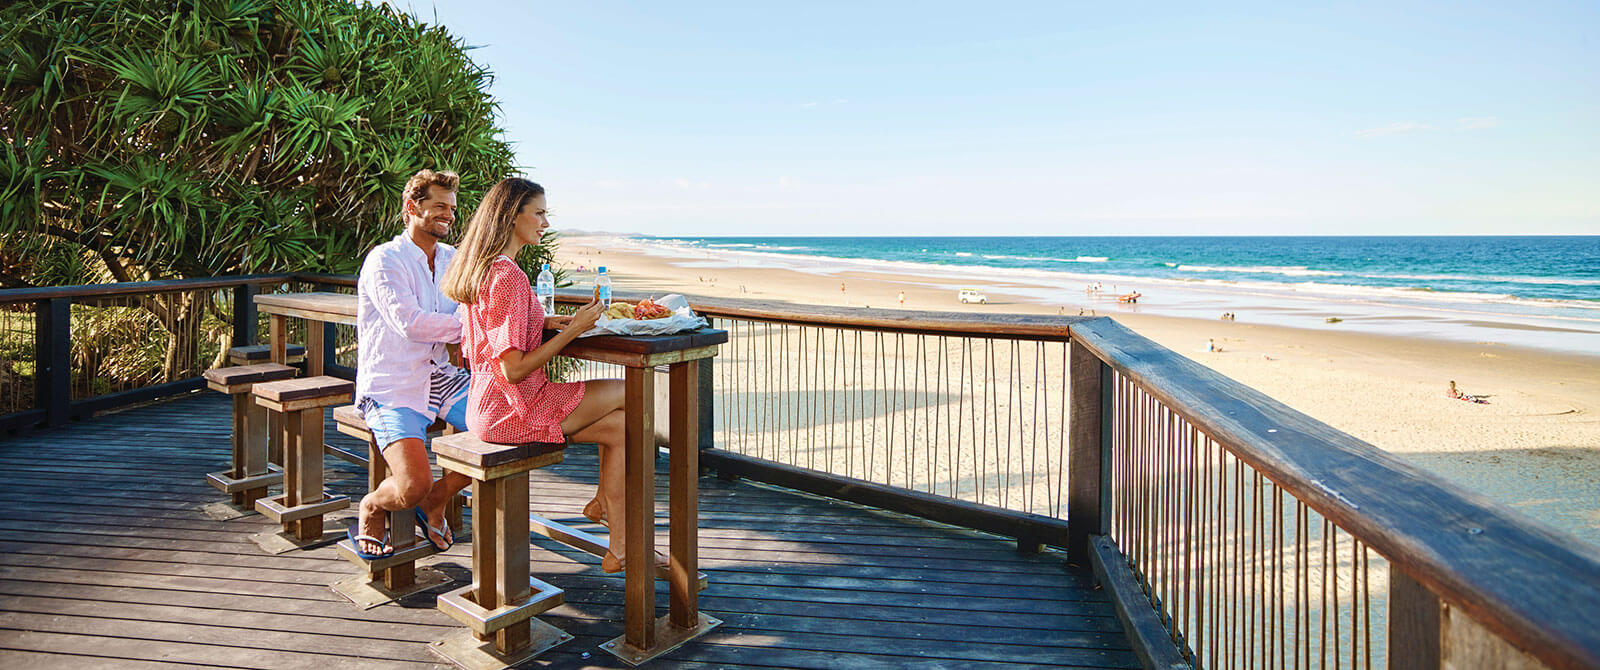 Beach Dining on the Sunshine Coast - Australia Getaway: Sunshine Coast and Kangaroo Island